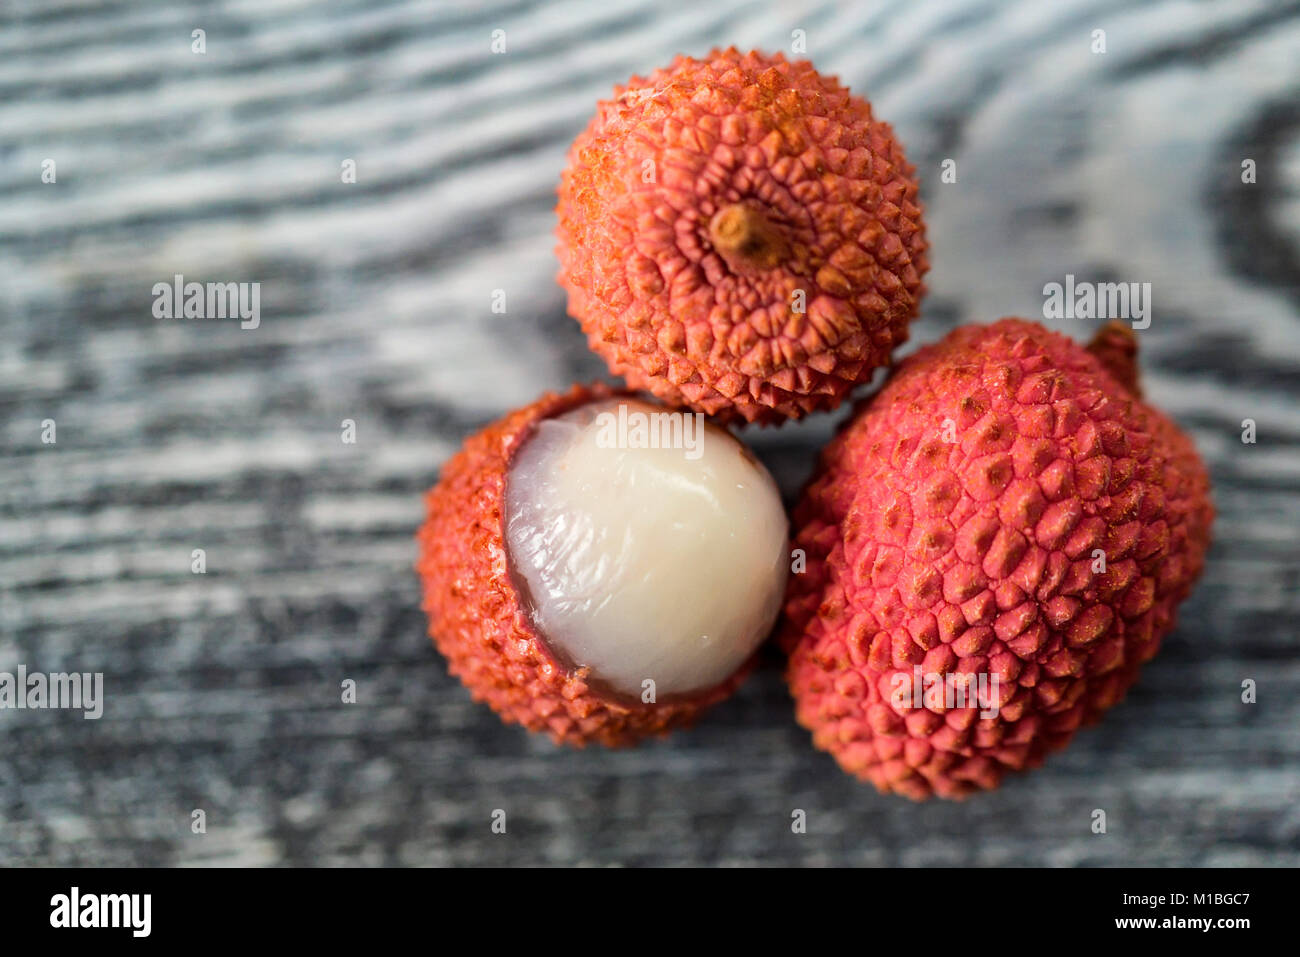 Three lychee fruits on wooden background close - Stock Image